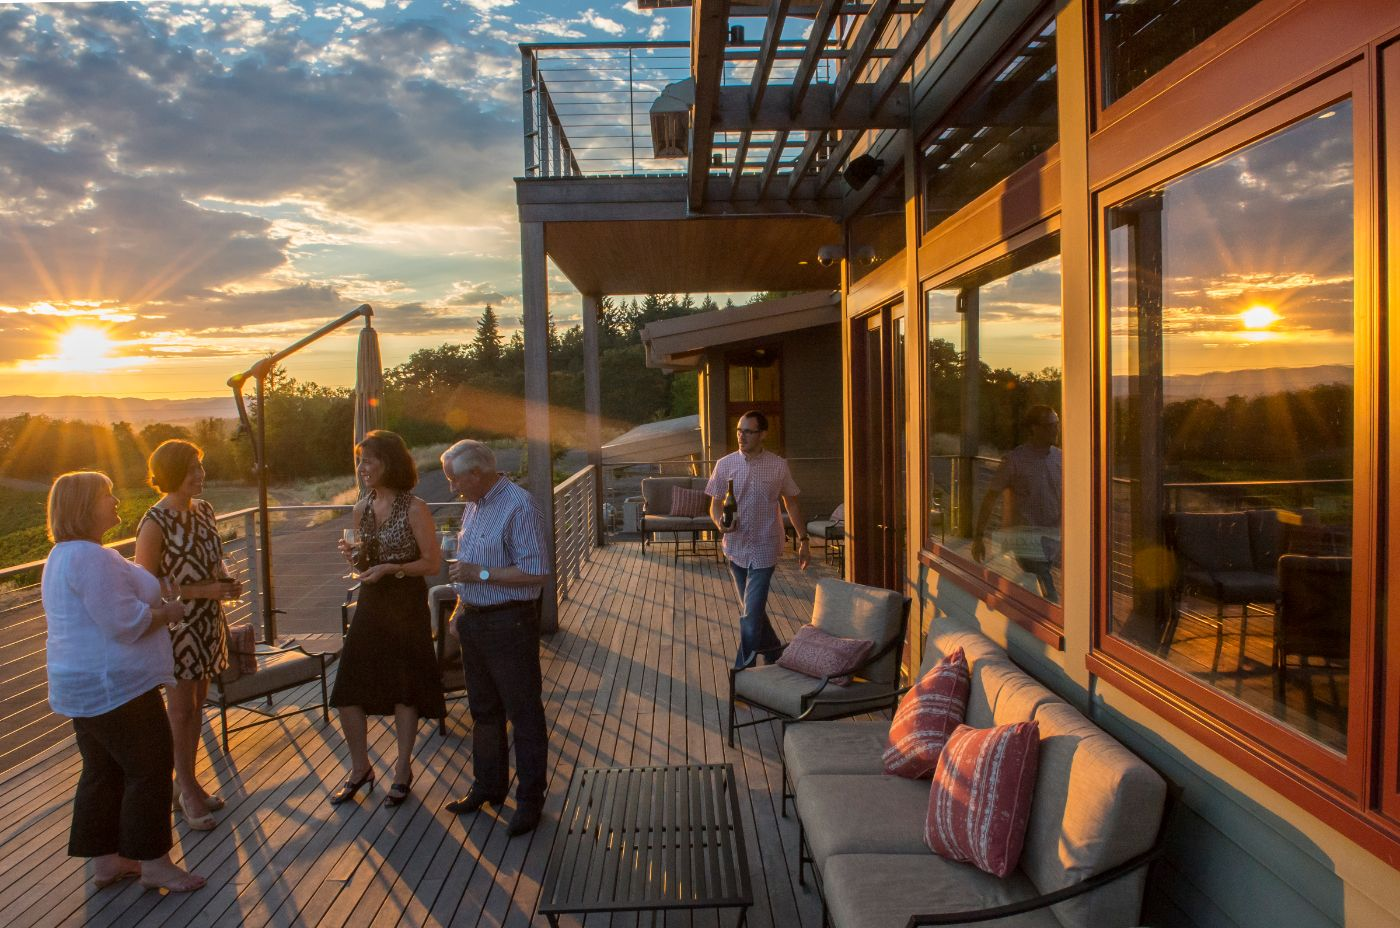 Tour Devine guests wine tasting at Alexana Winery near Dundee Oregon at sunset